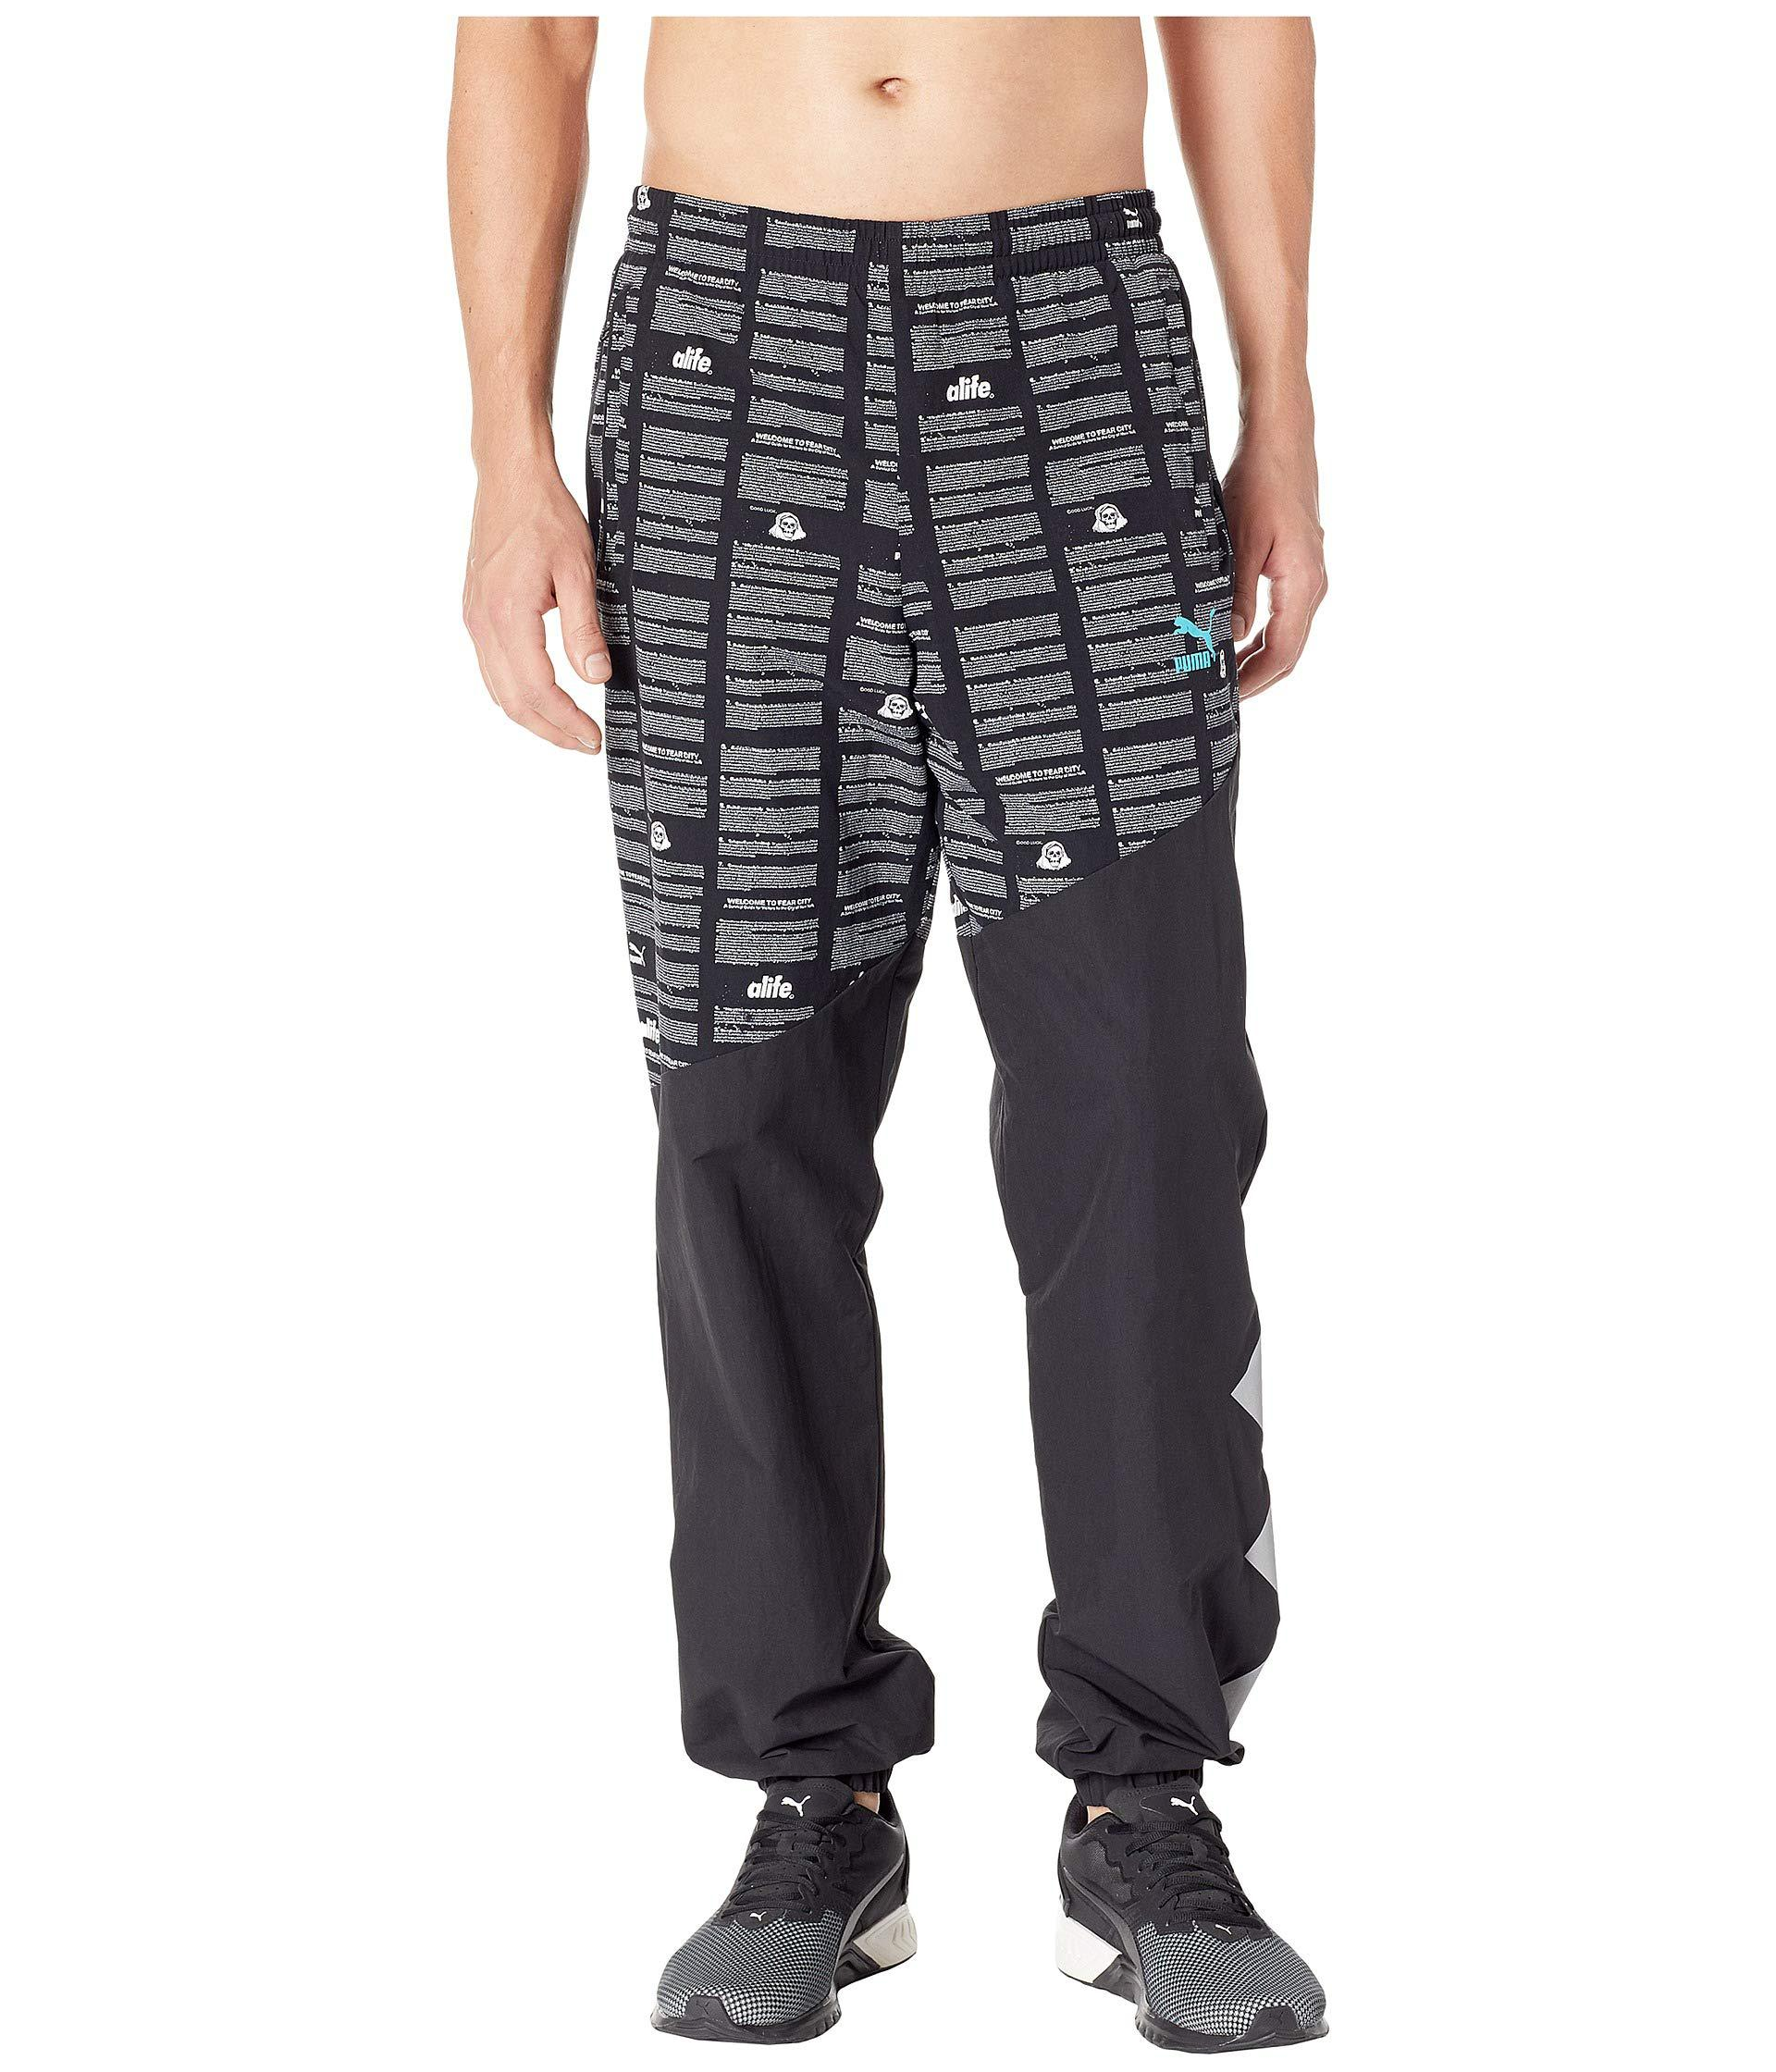 e58a2797c2b8 Lyst - PUMA Alife Pants Savannah in Black for Men